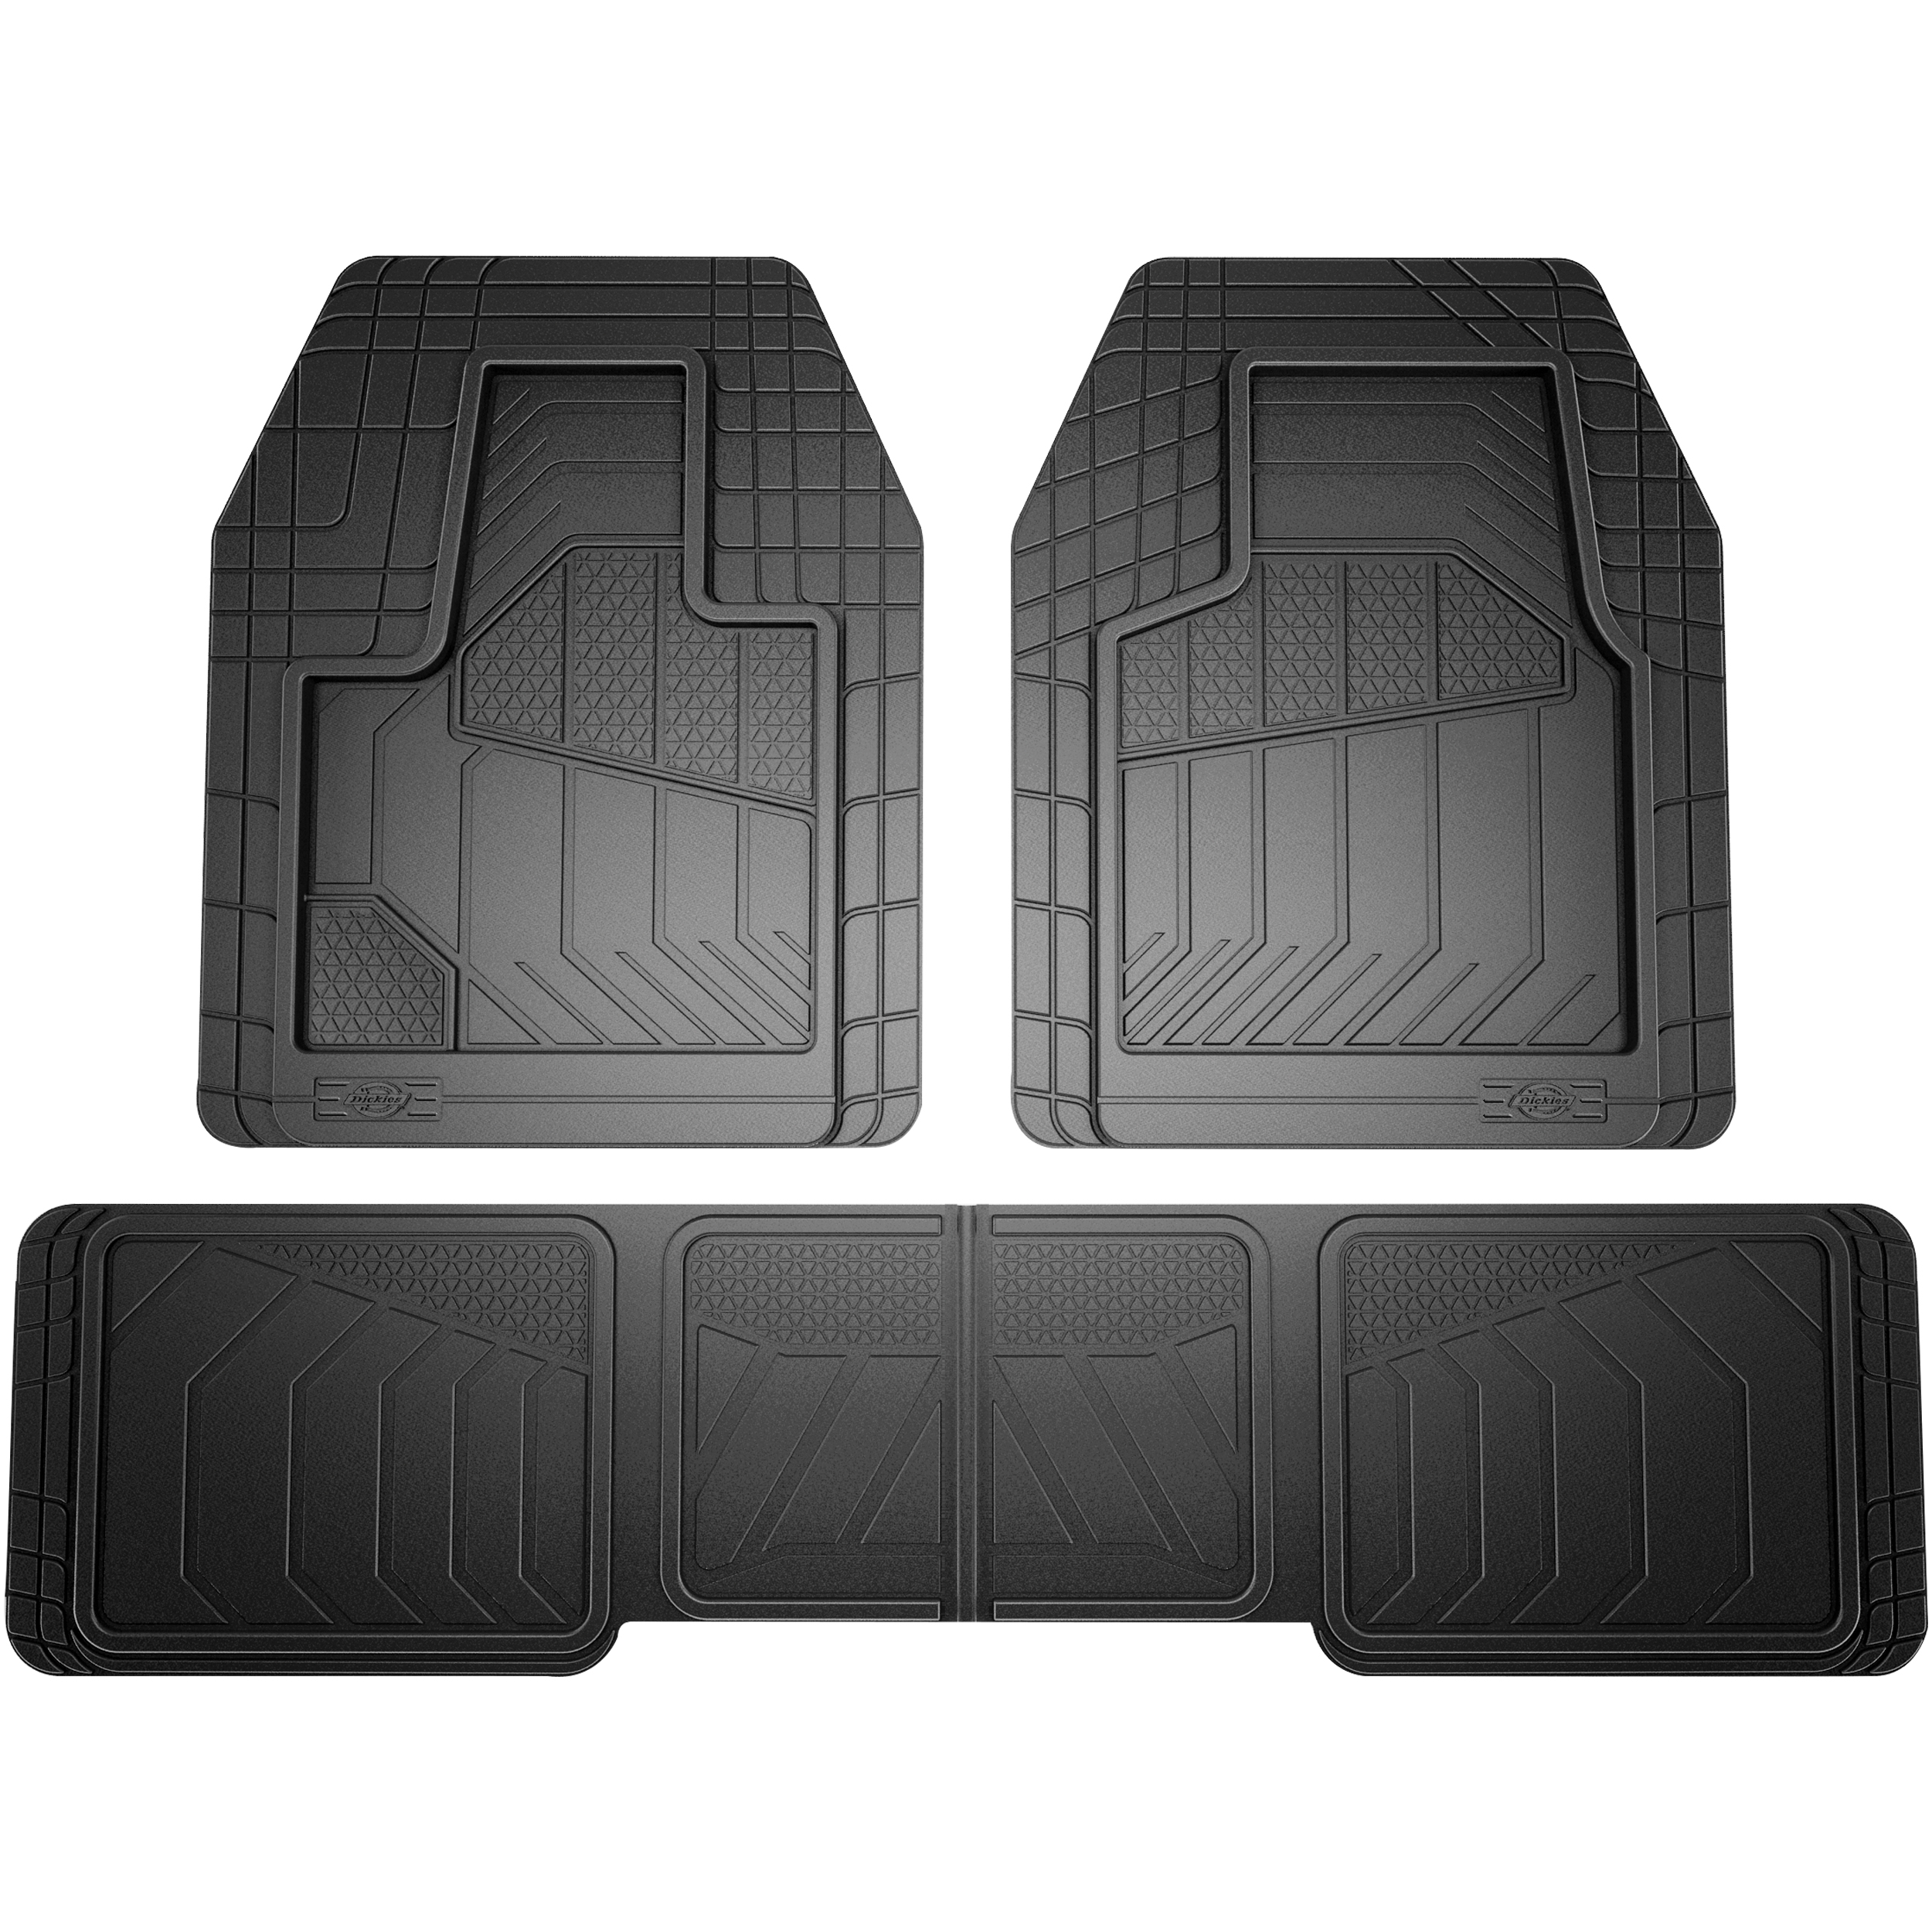 Genuine Dickies 5 Piece Max Coverage Universal Fit Floor Mat Set, Black